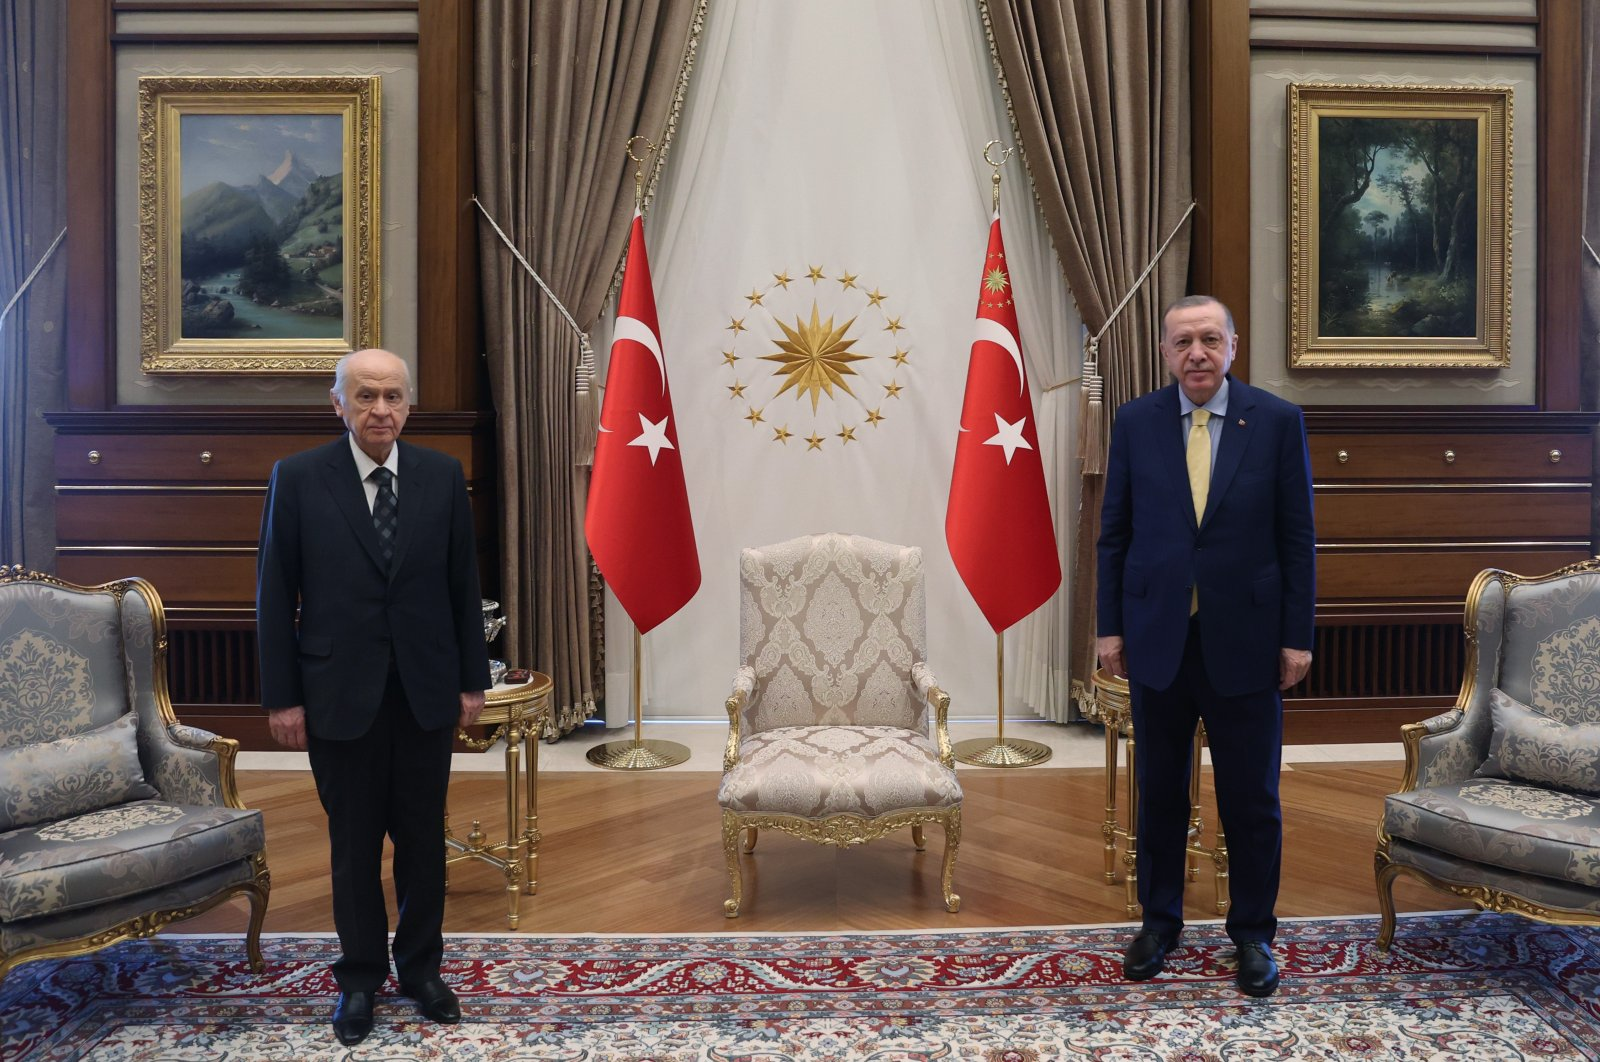 Nationalist Movement Party (MHP) leader Devlet Bahçeli (L) and President Recep Tayyip Erdoğan pose before a meeting in the Presidential Complex, the capital Ankara, Turkey, Feb. 5, 2021. (AA Photo)